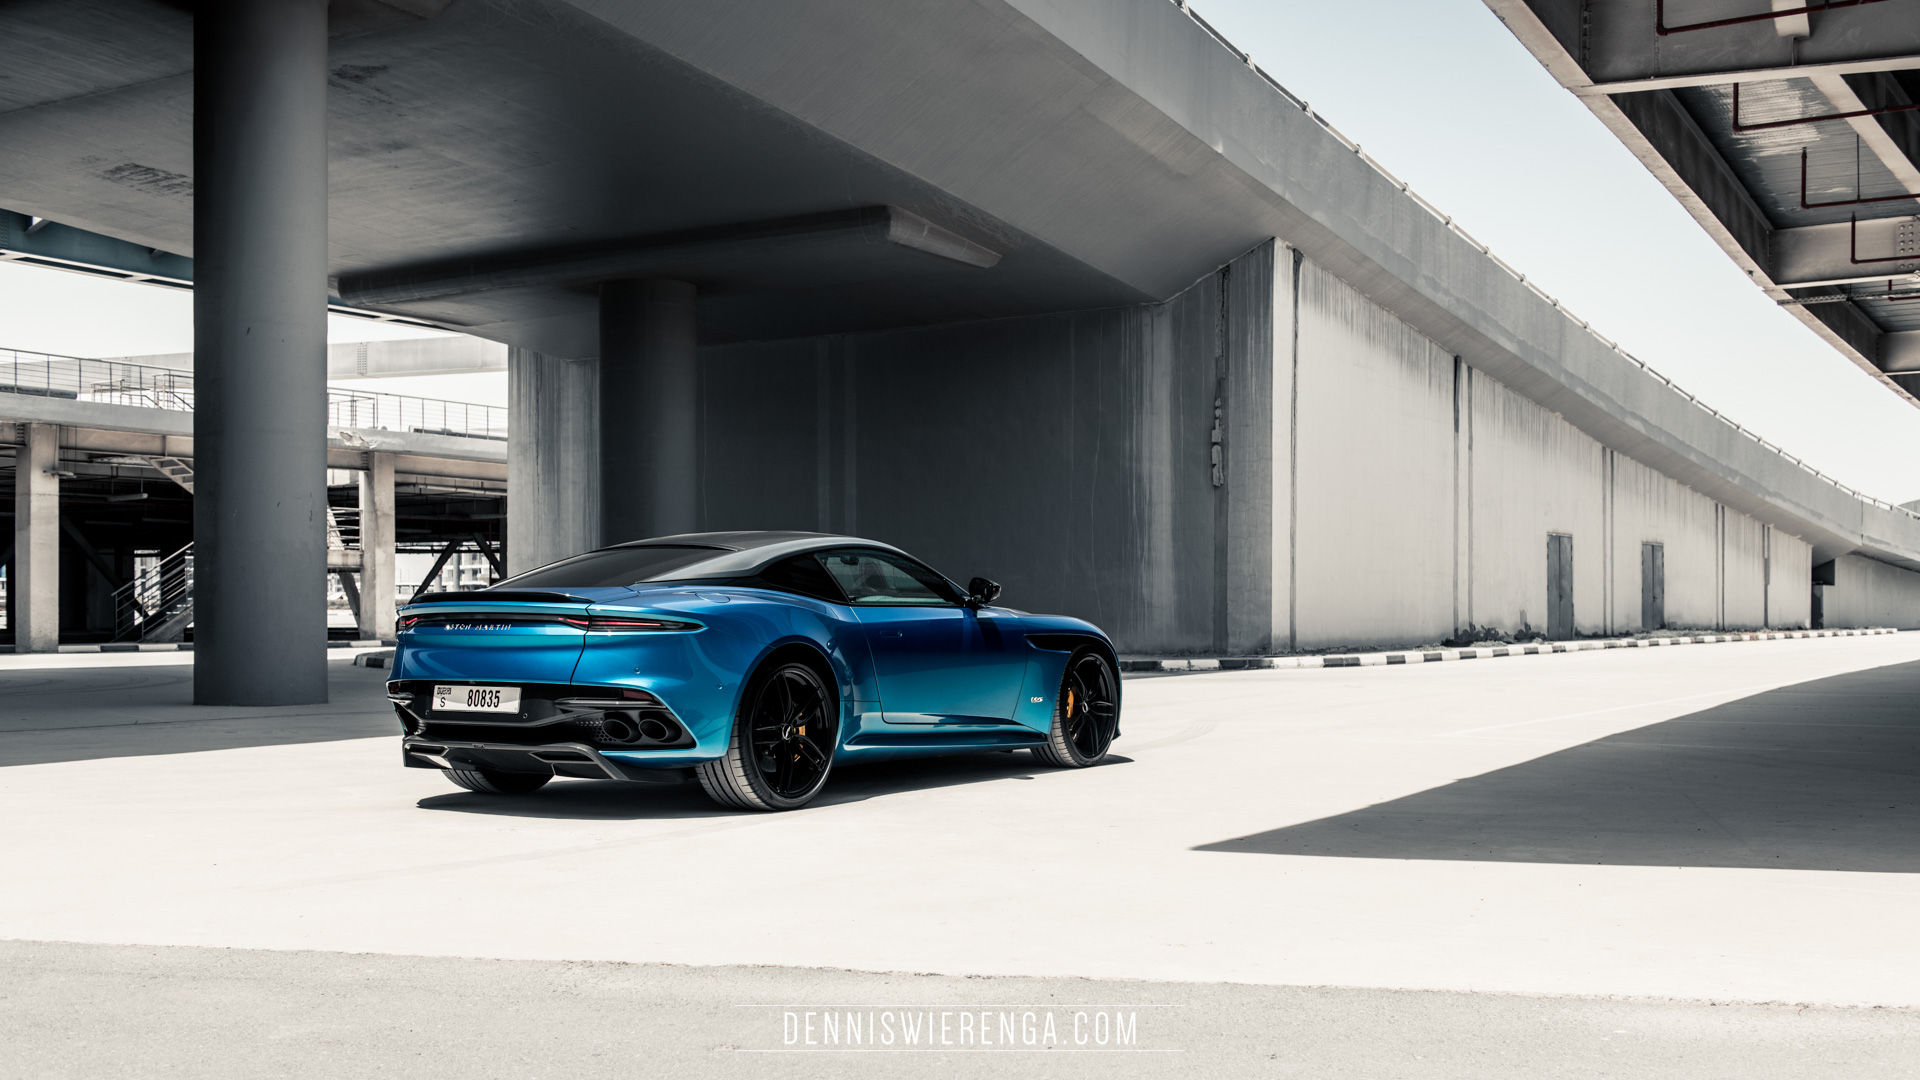 Aston Martin DBS Superleggera web-12